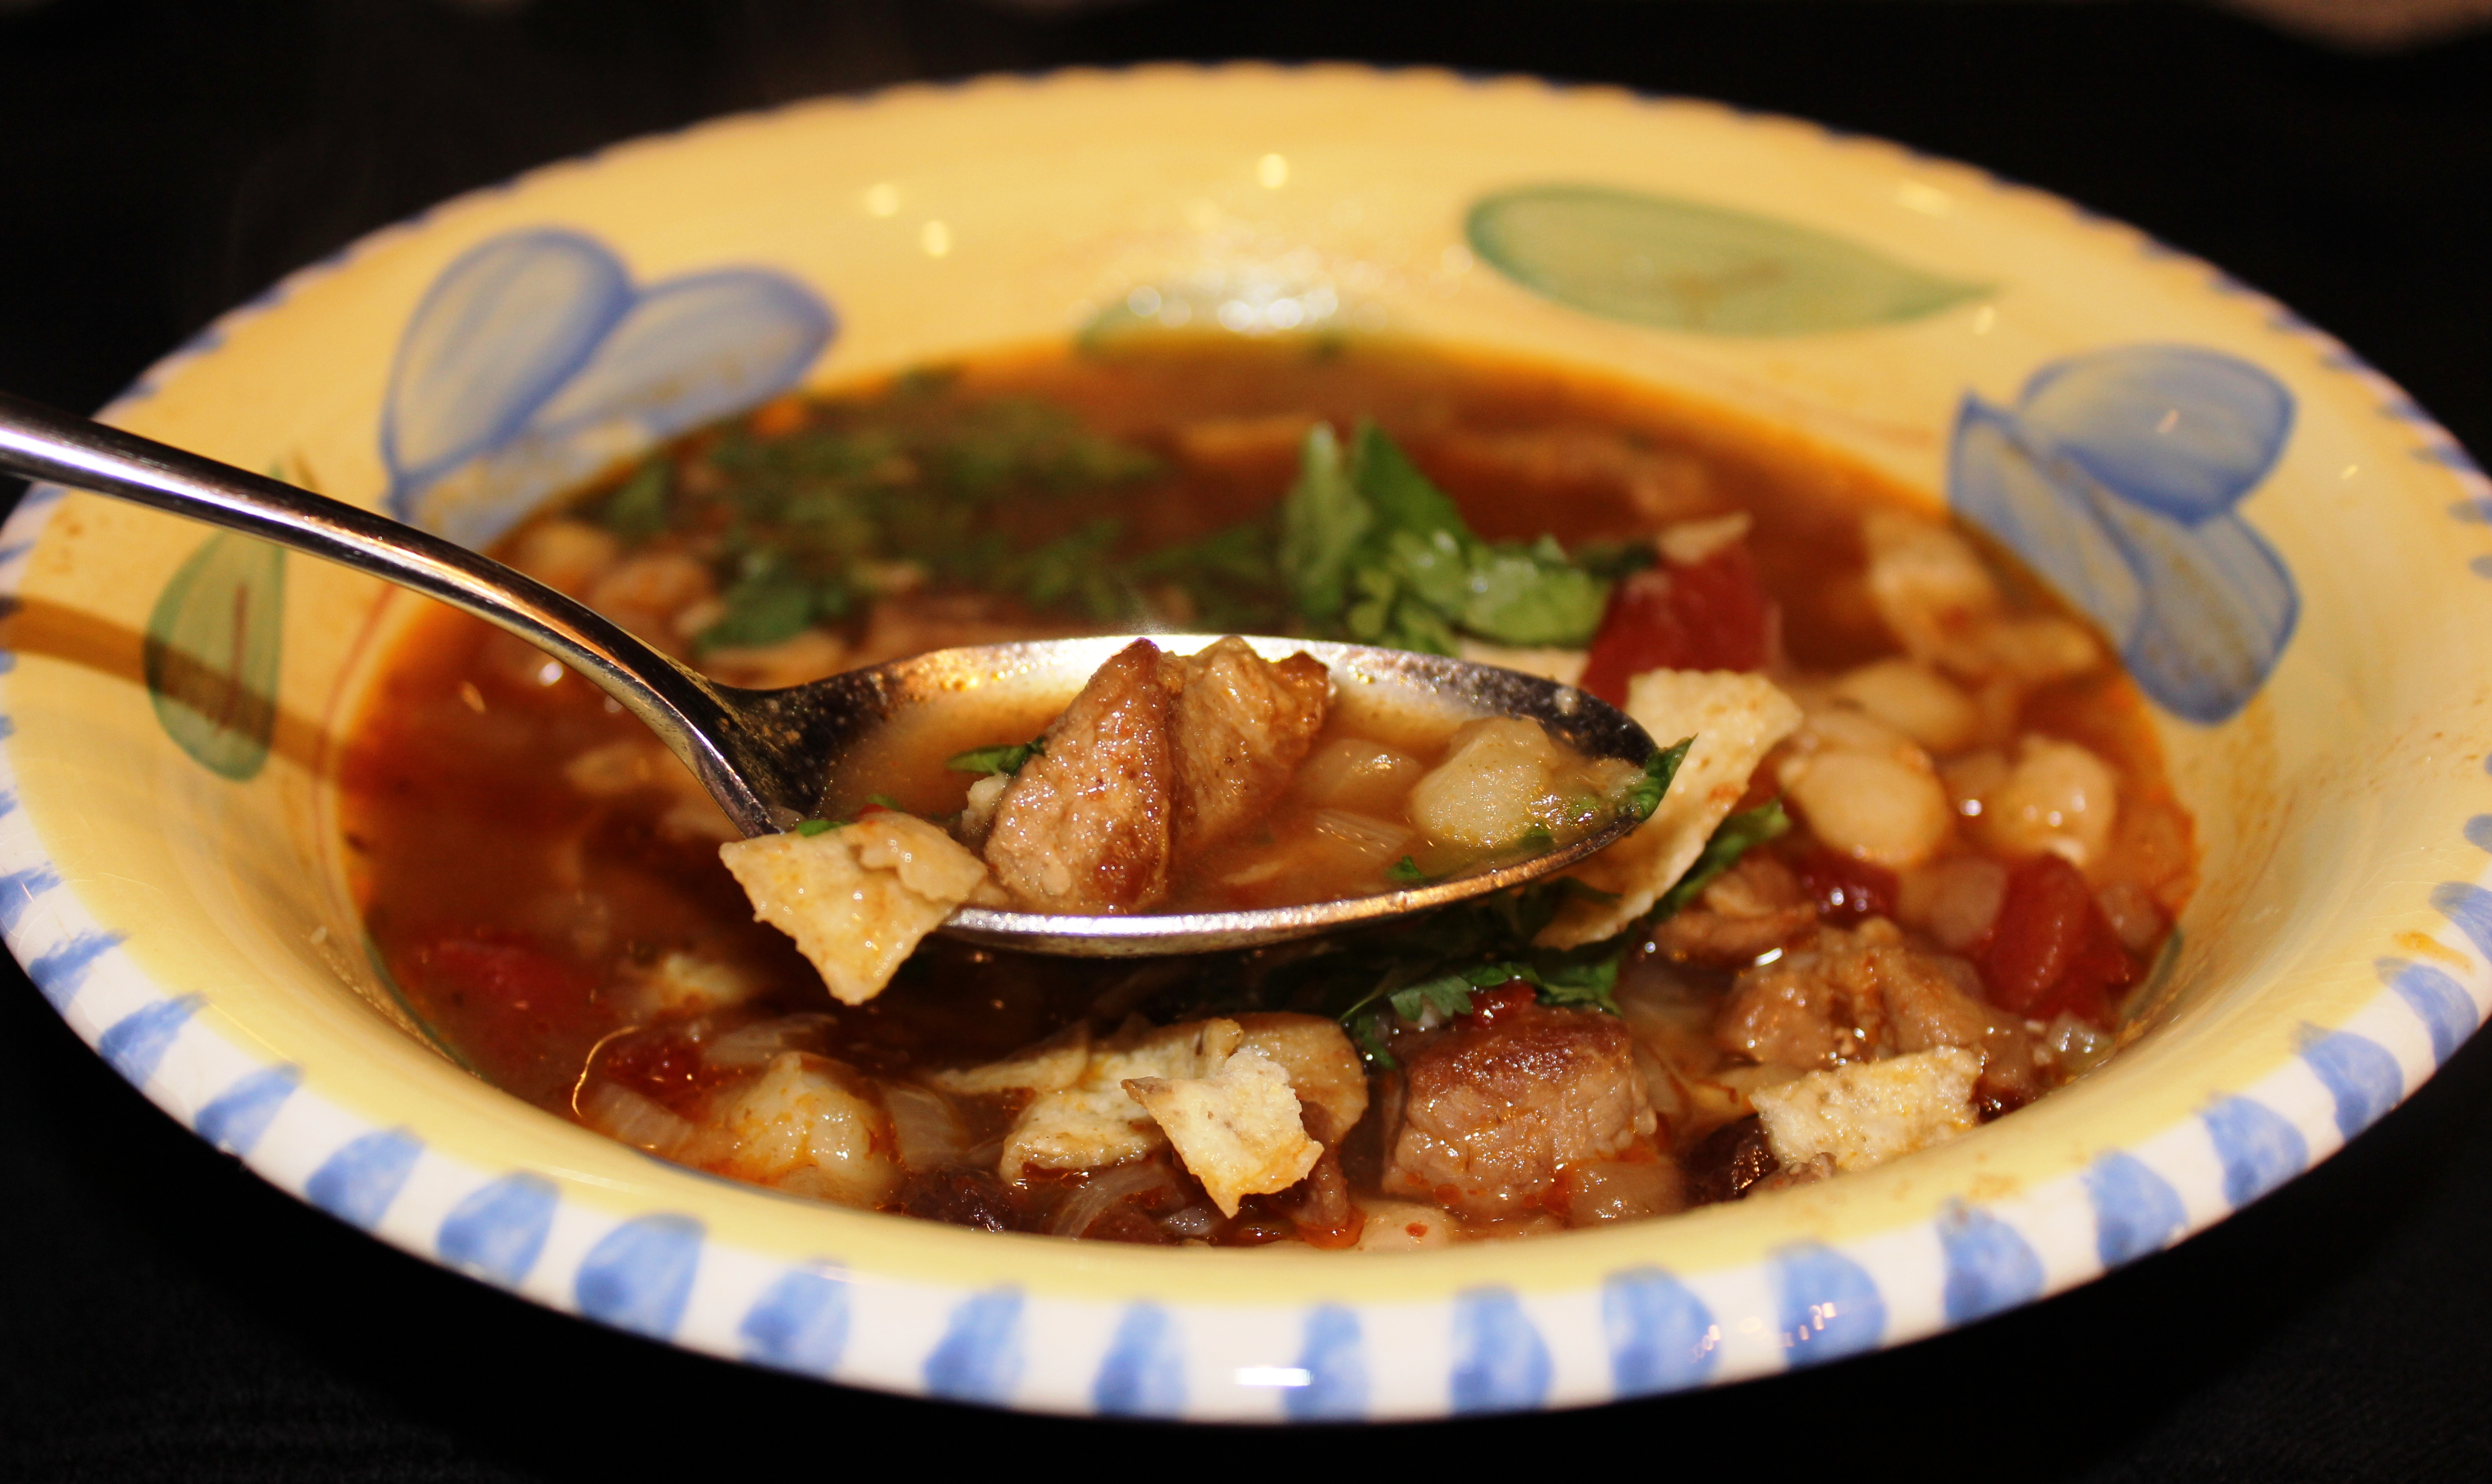 Posole (Mexican Pork Stew)